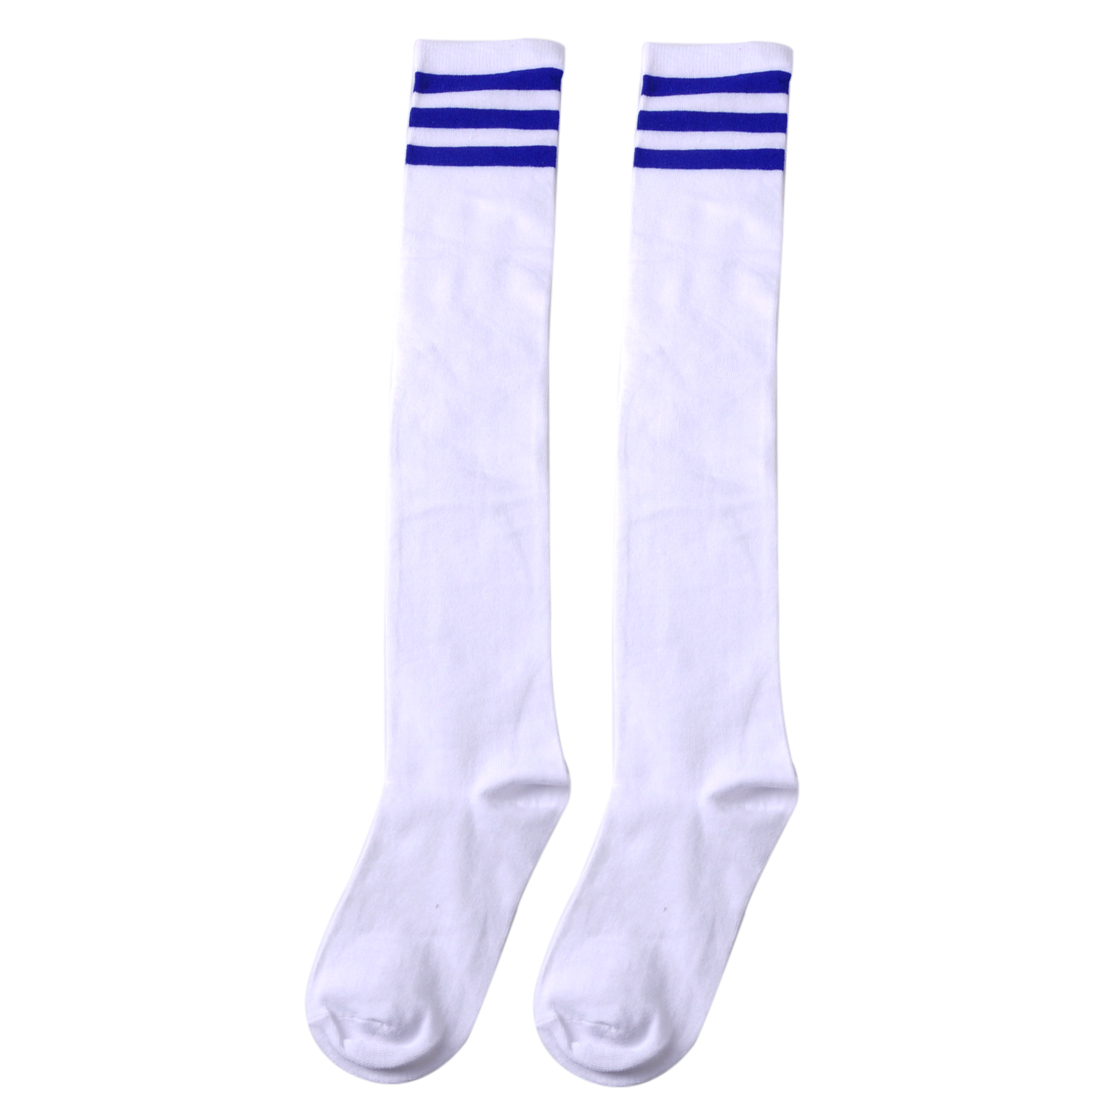 Women Girls Thigh High Over the Knee Socks Long Cotton Stockings Warm New. from $ 2 out of 5 stars Ordenado. Girls' Knee High Socks Cable Knit Years Uniform Tube Cotton Socks 3 Pairs. from $ 6 99 Prime. out of 5 stars saounisi.